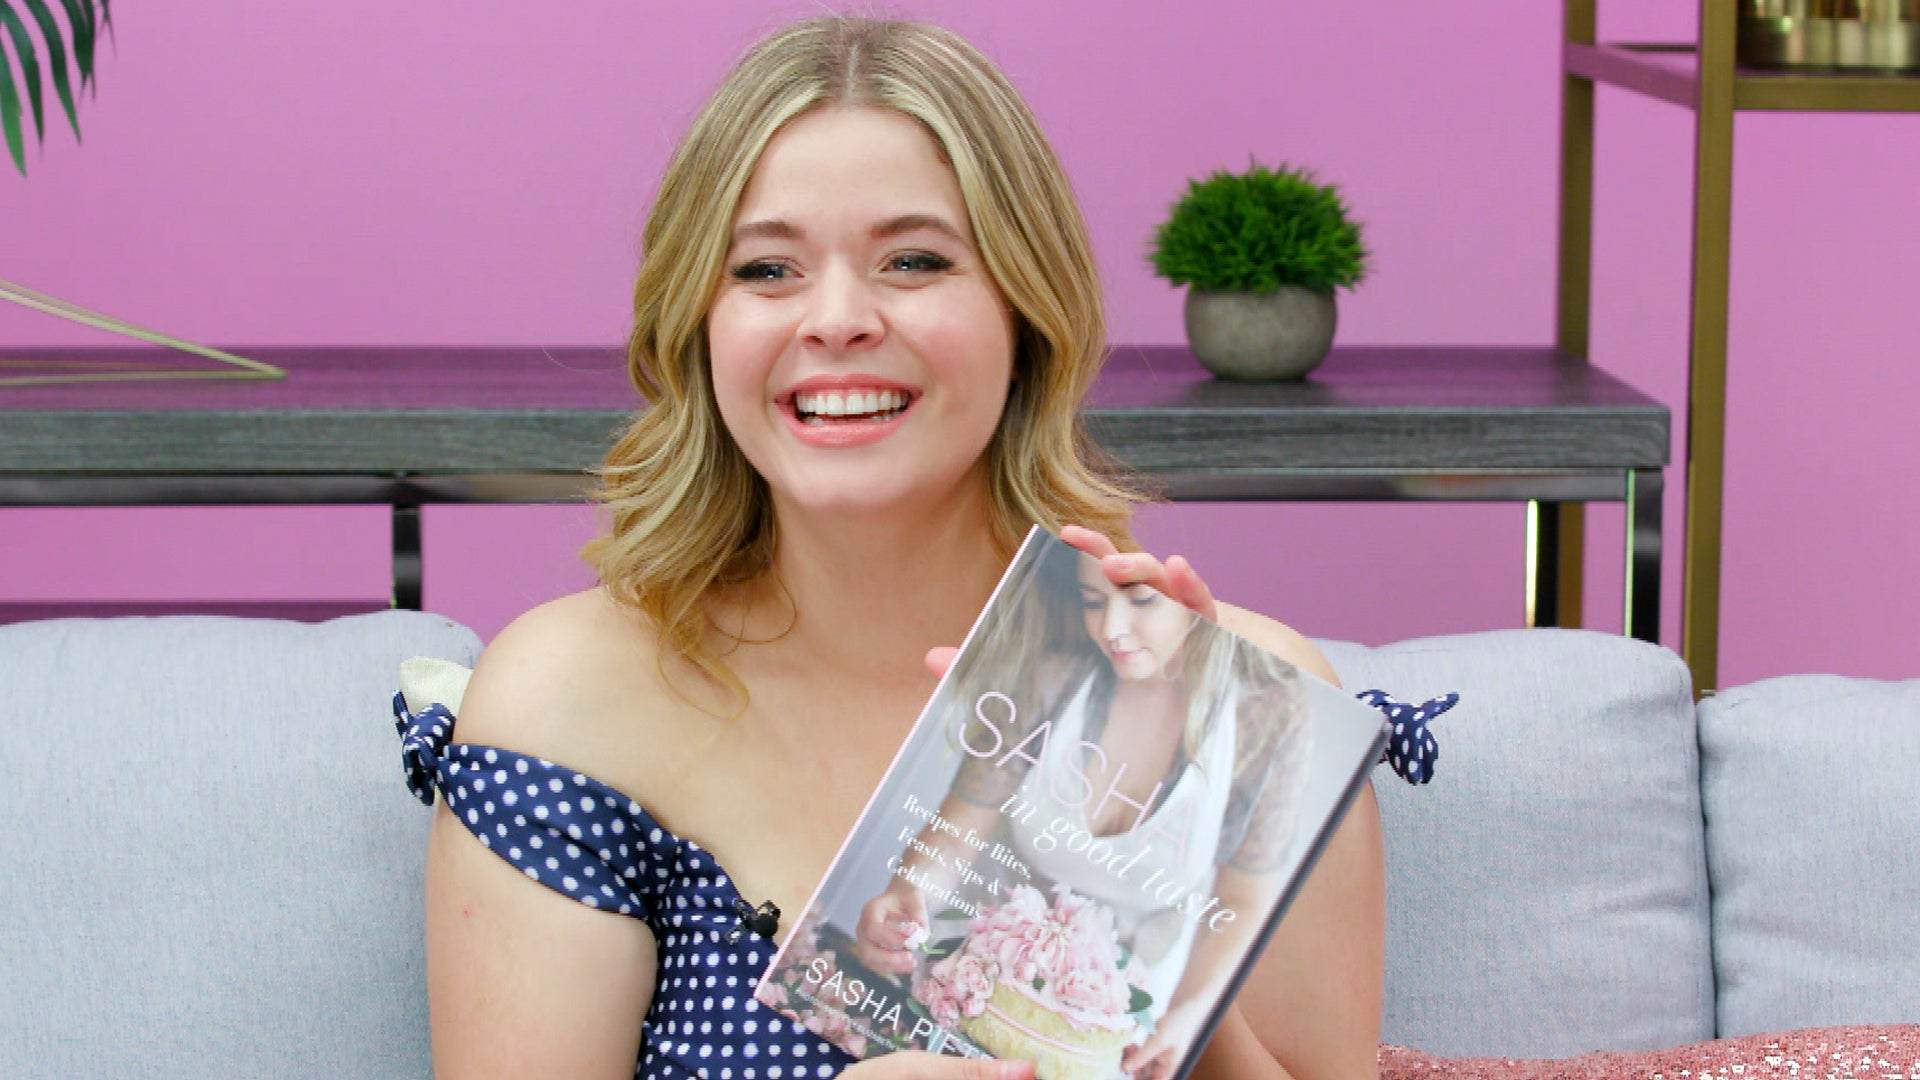 Sasha Pieterse Wants 'More Closure' After 'PLL: The Perfectionists' Cancellation (Exclusive)